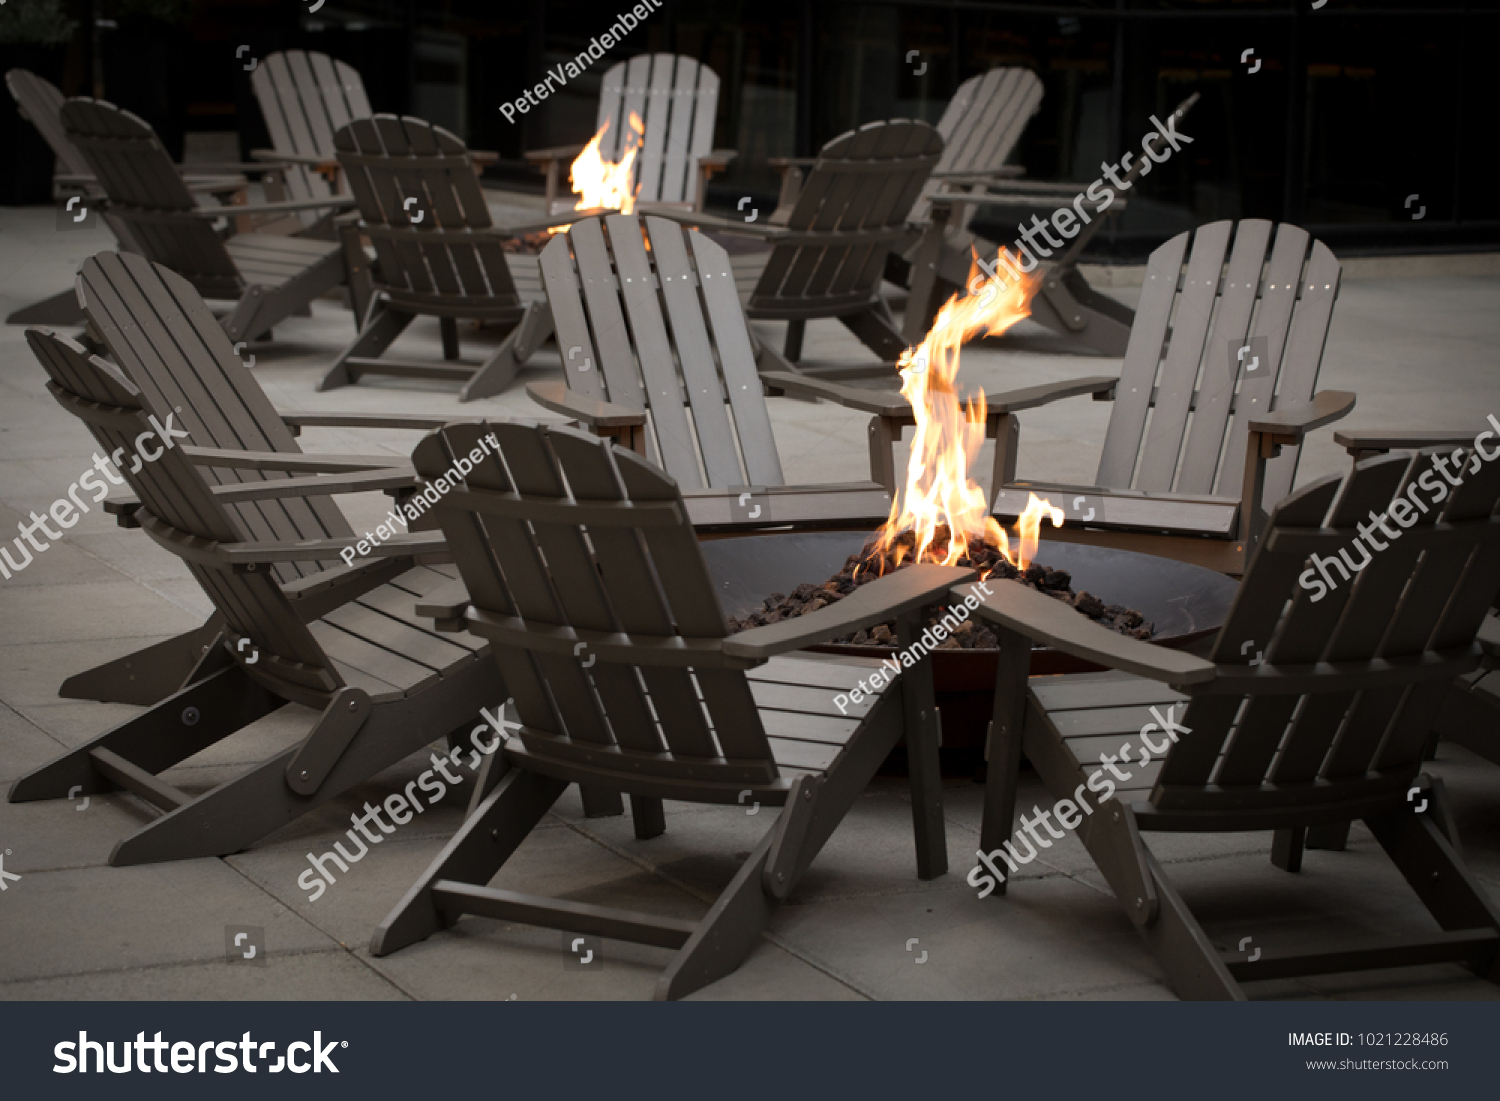 Gas Fire Pit Surrounded By A Circle Of Adirondack Chairs, With Another  Campfire In The